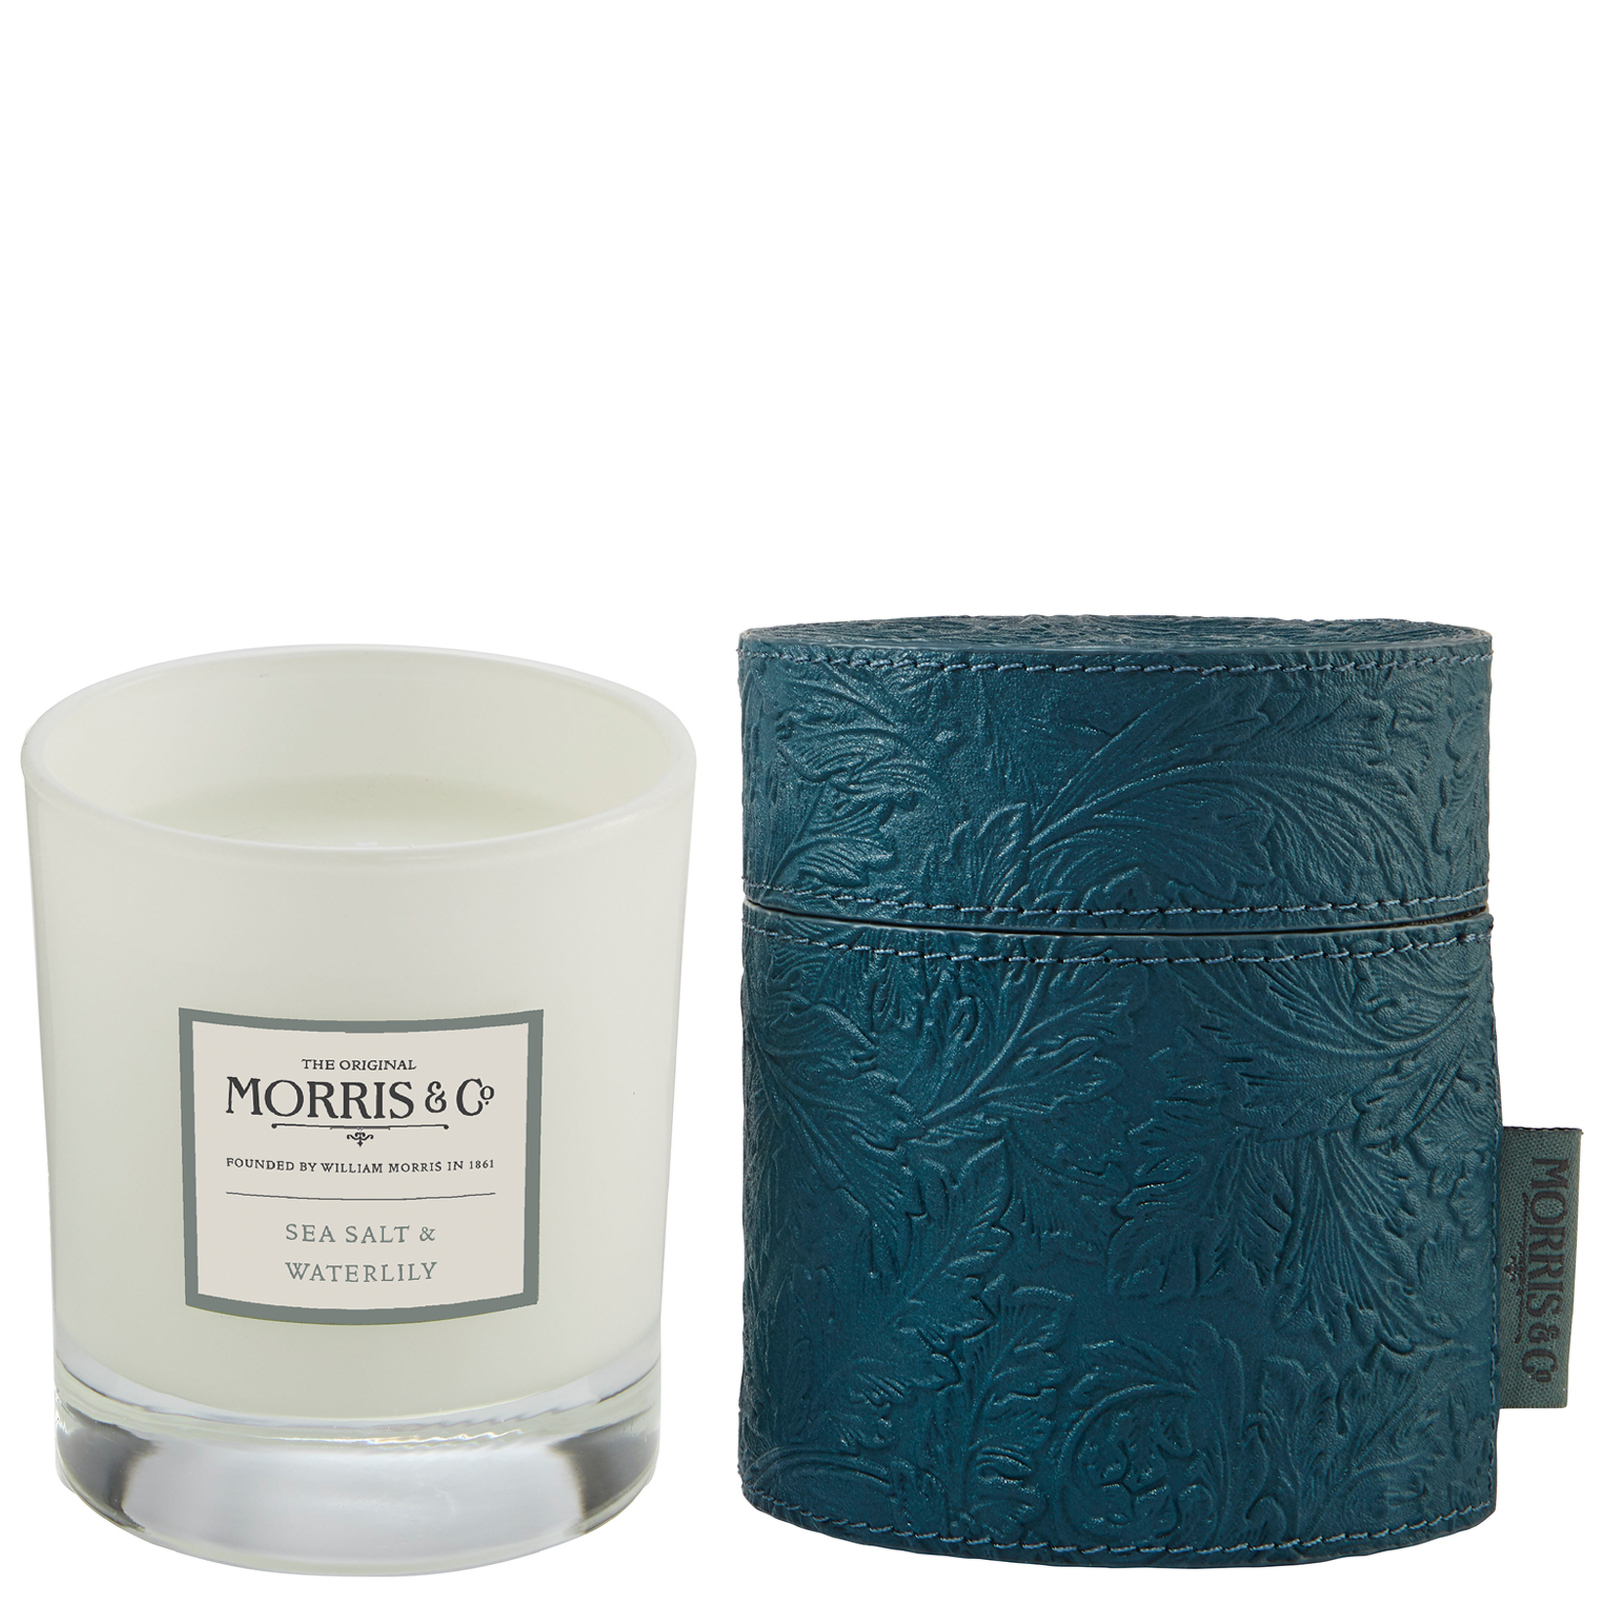 MORRIS & Co Sea Salt & Waterlily Scented Candle in Fabric Drum 180g